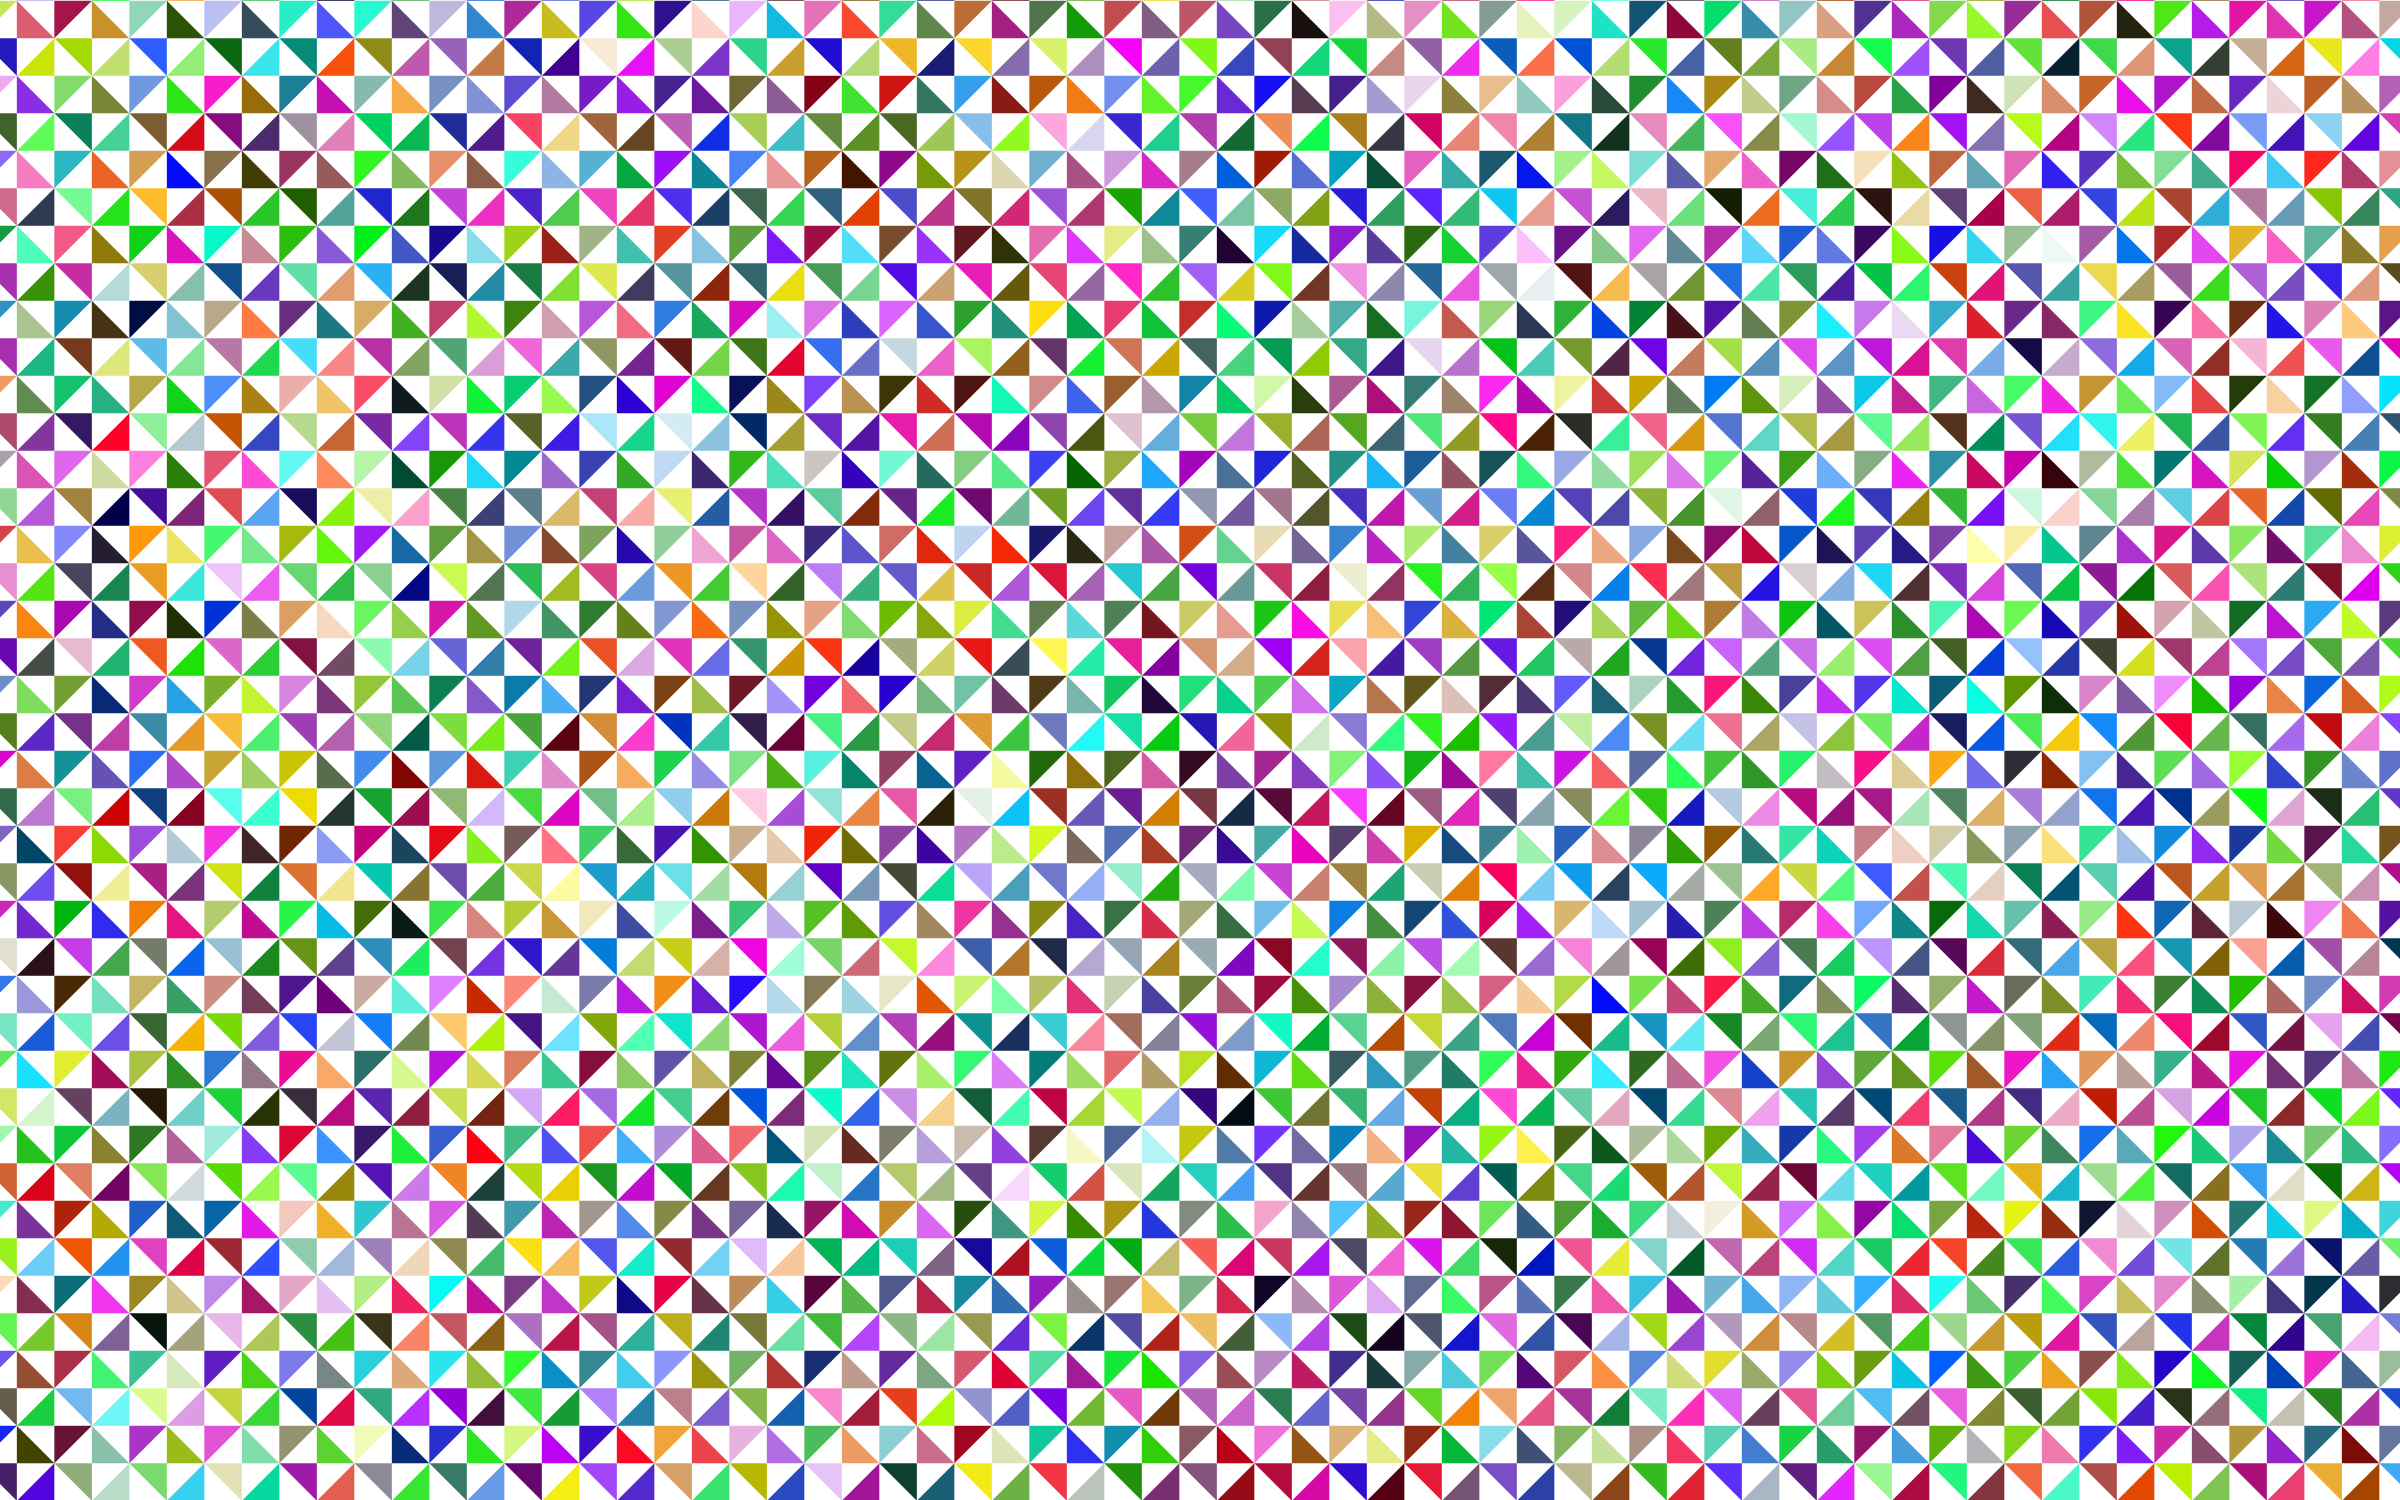 Prismatic Triangular Pattern by GDJ